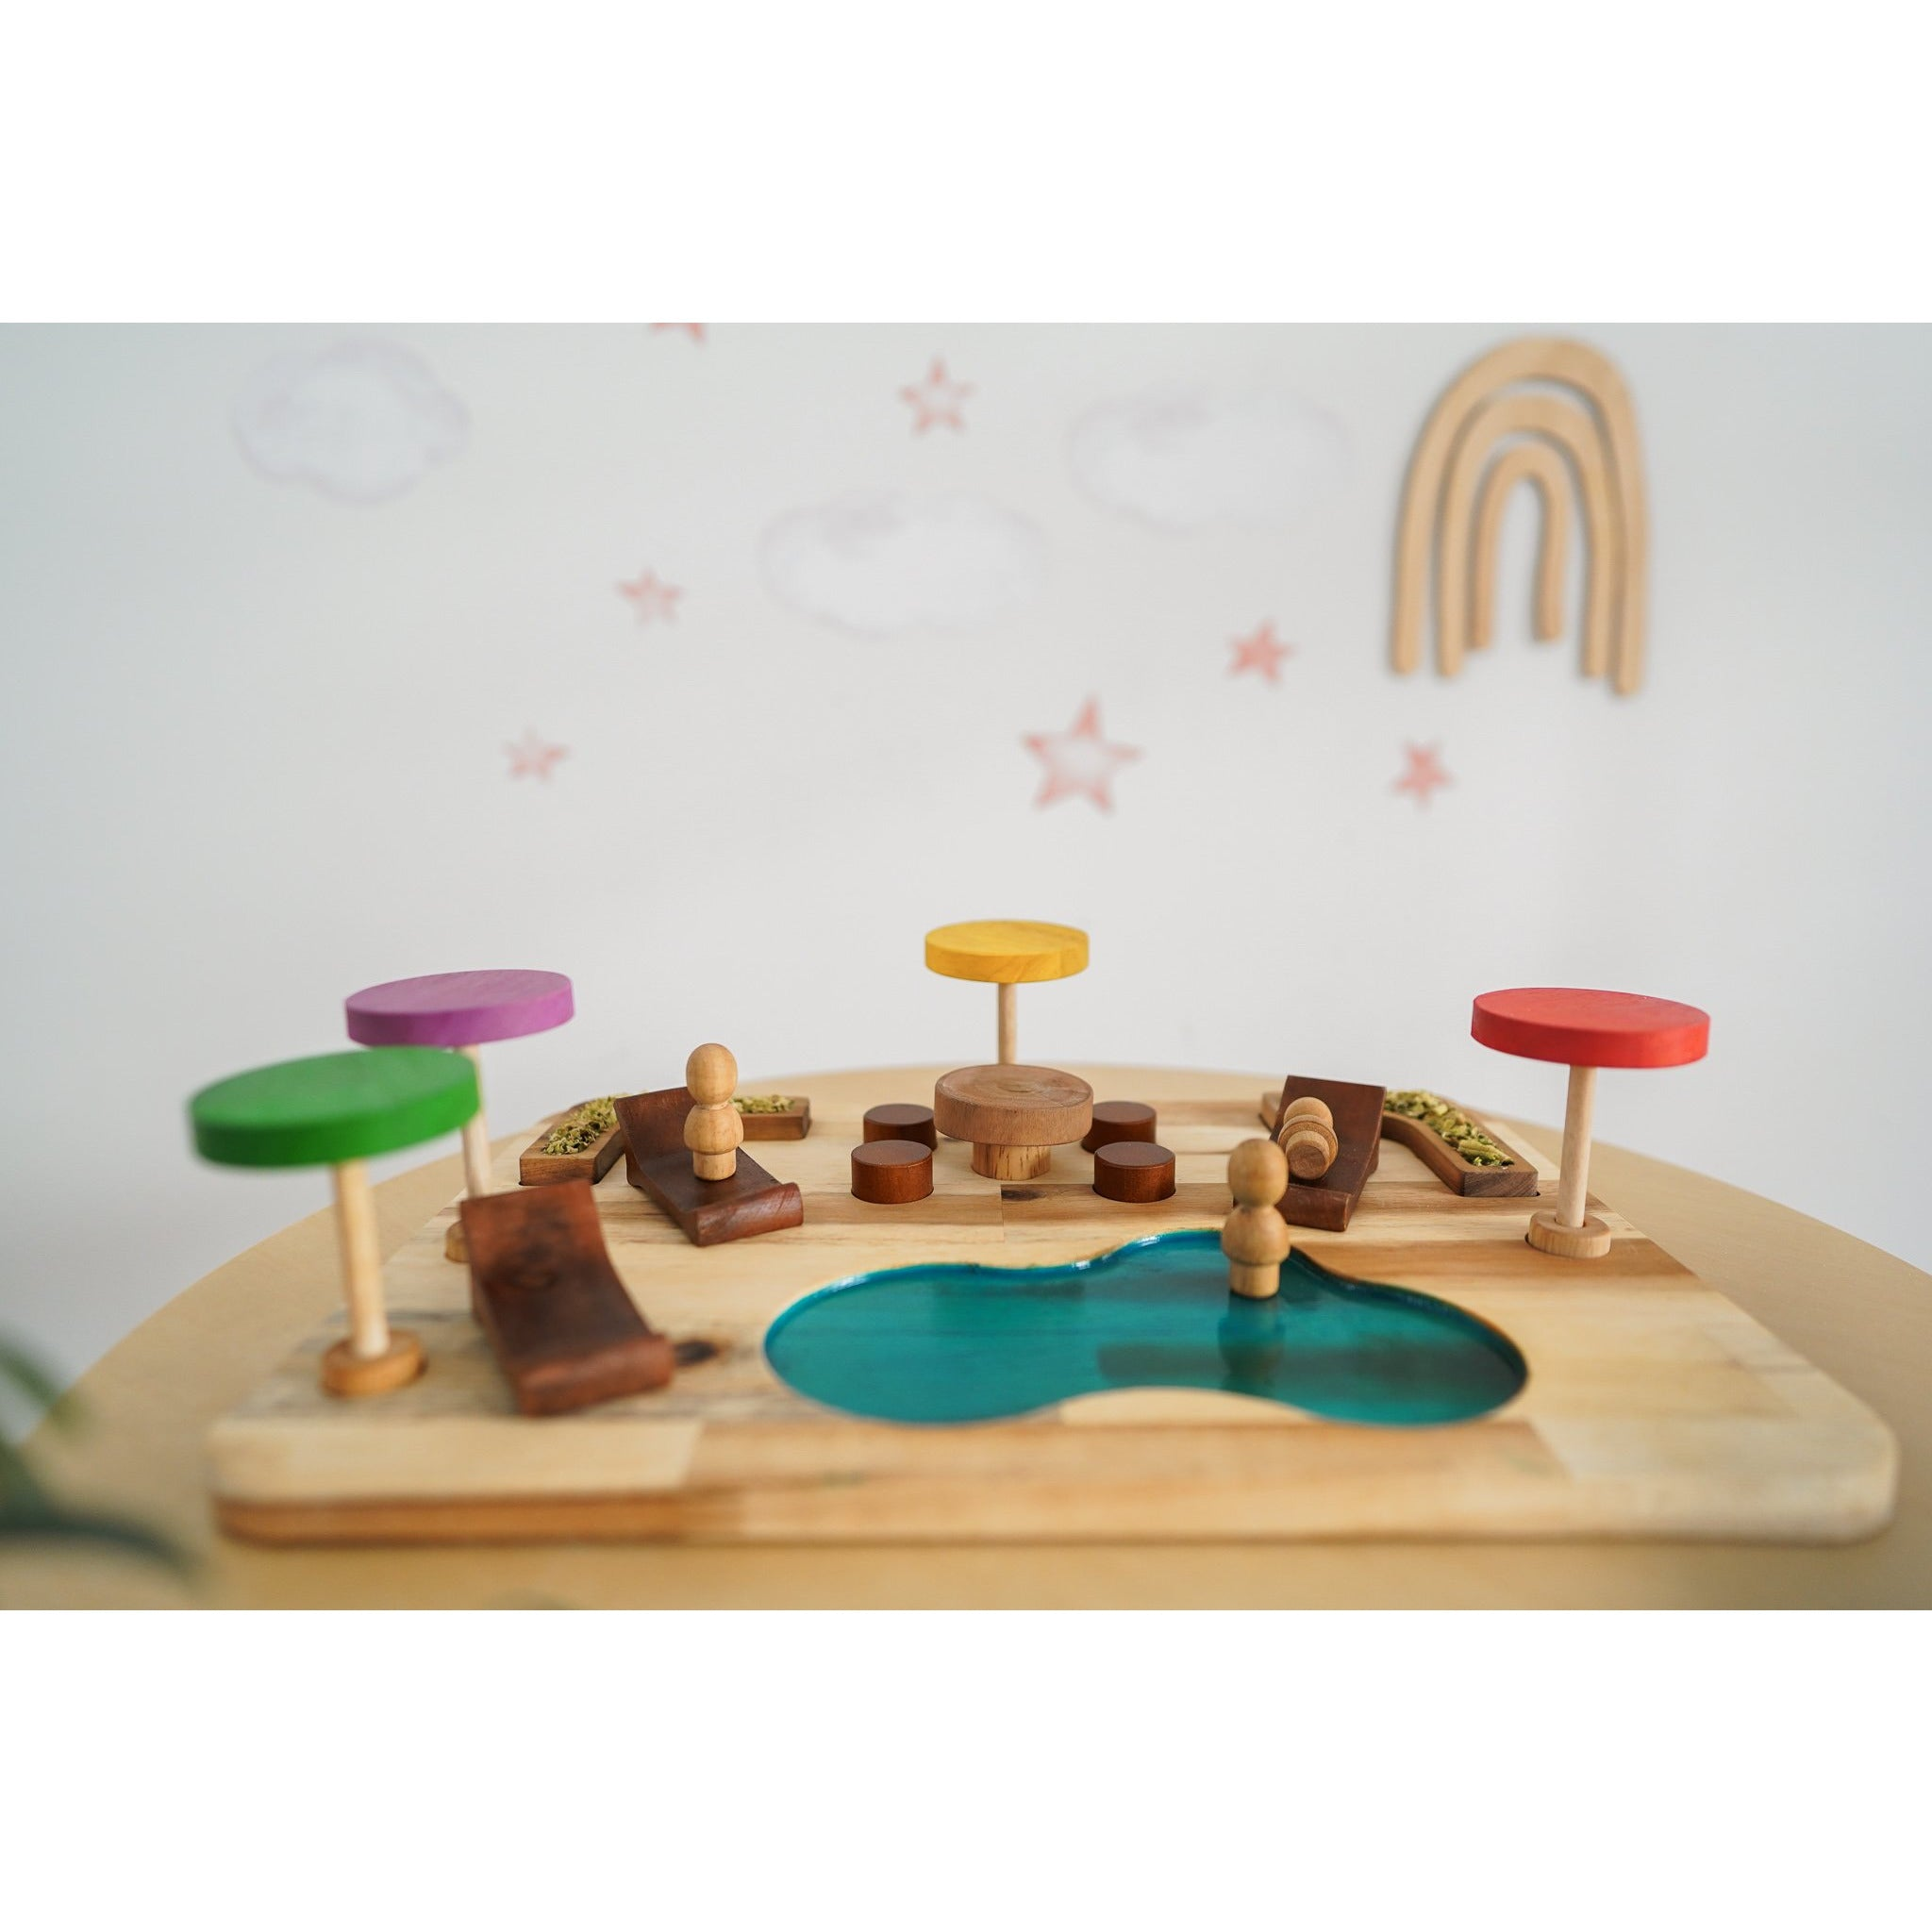 QToys Gnomes Resort Wooden Toy-MercadoGames.com